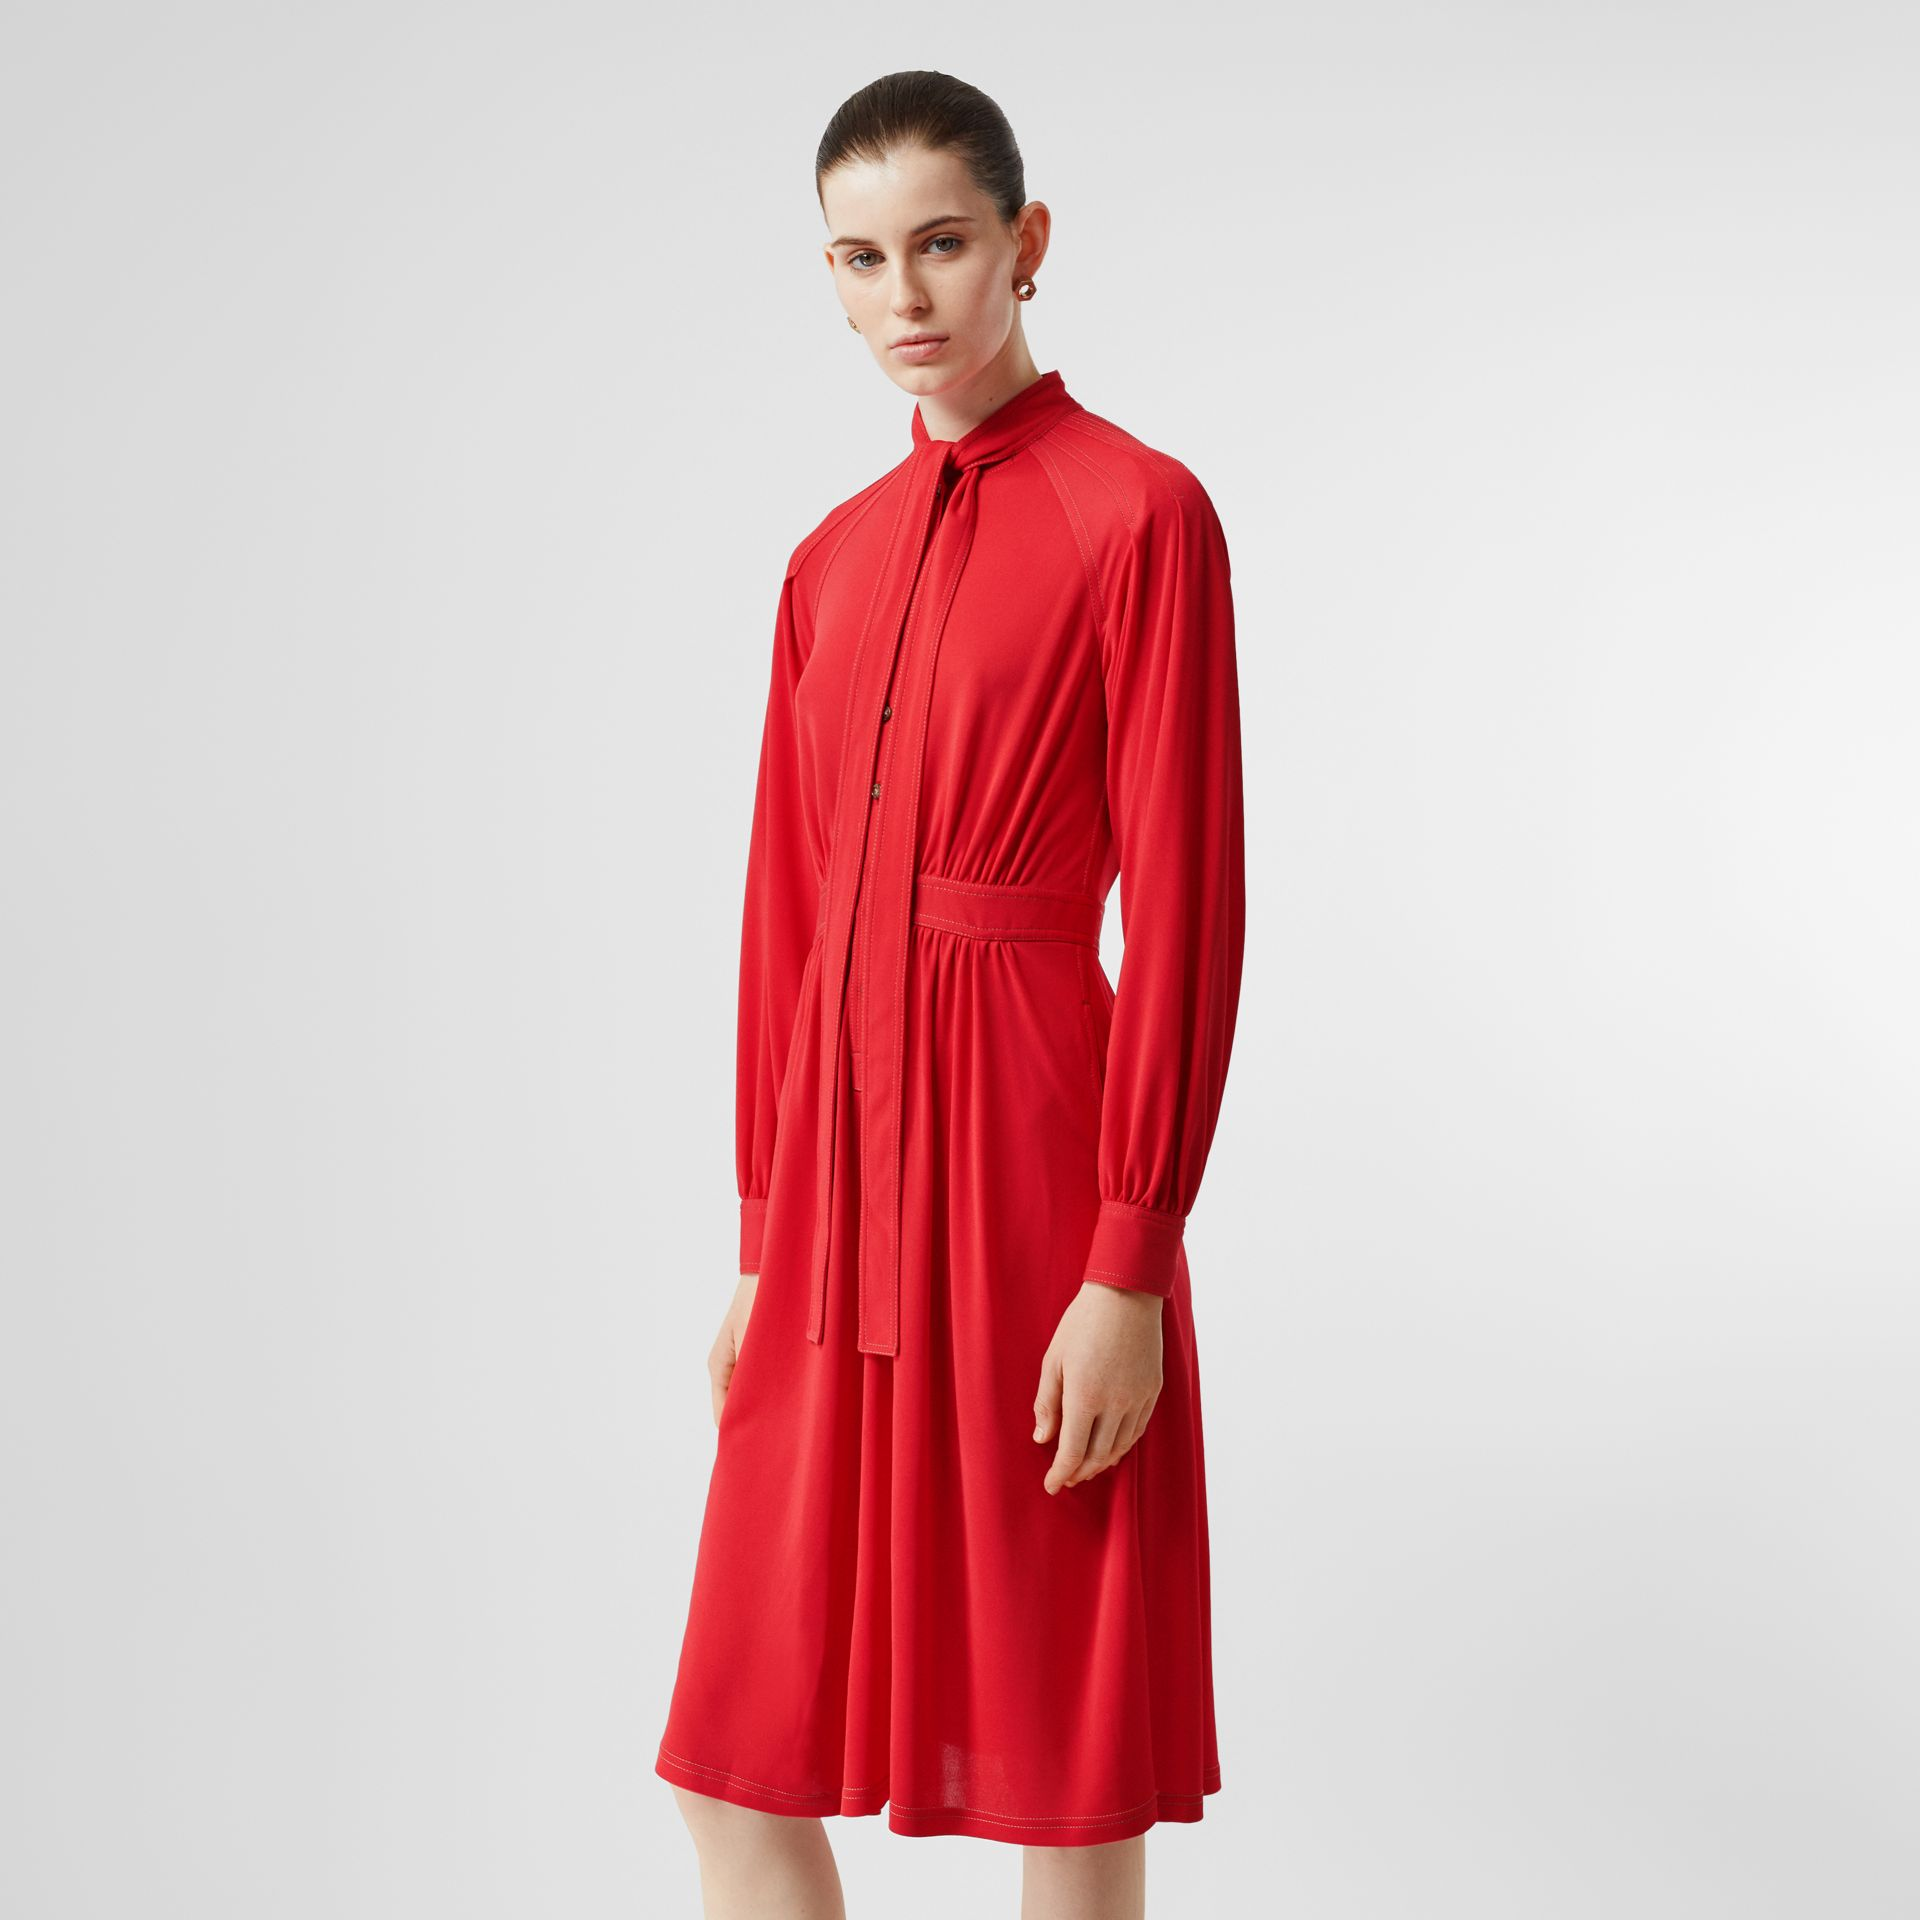 Topstitch Detail Jersey Tie-neck Dress in Bright Red - Women | Burberry United Kingdom - gallery image 5